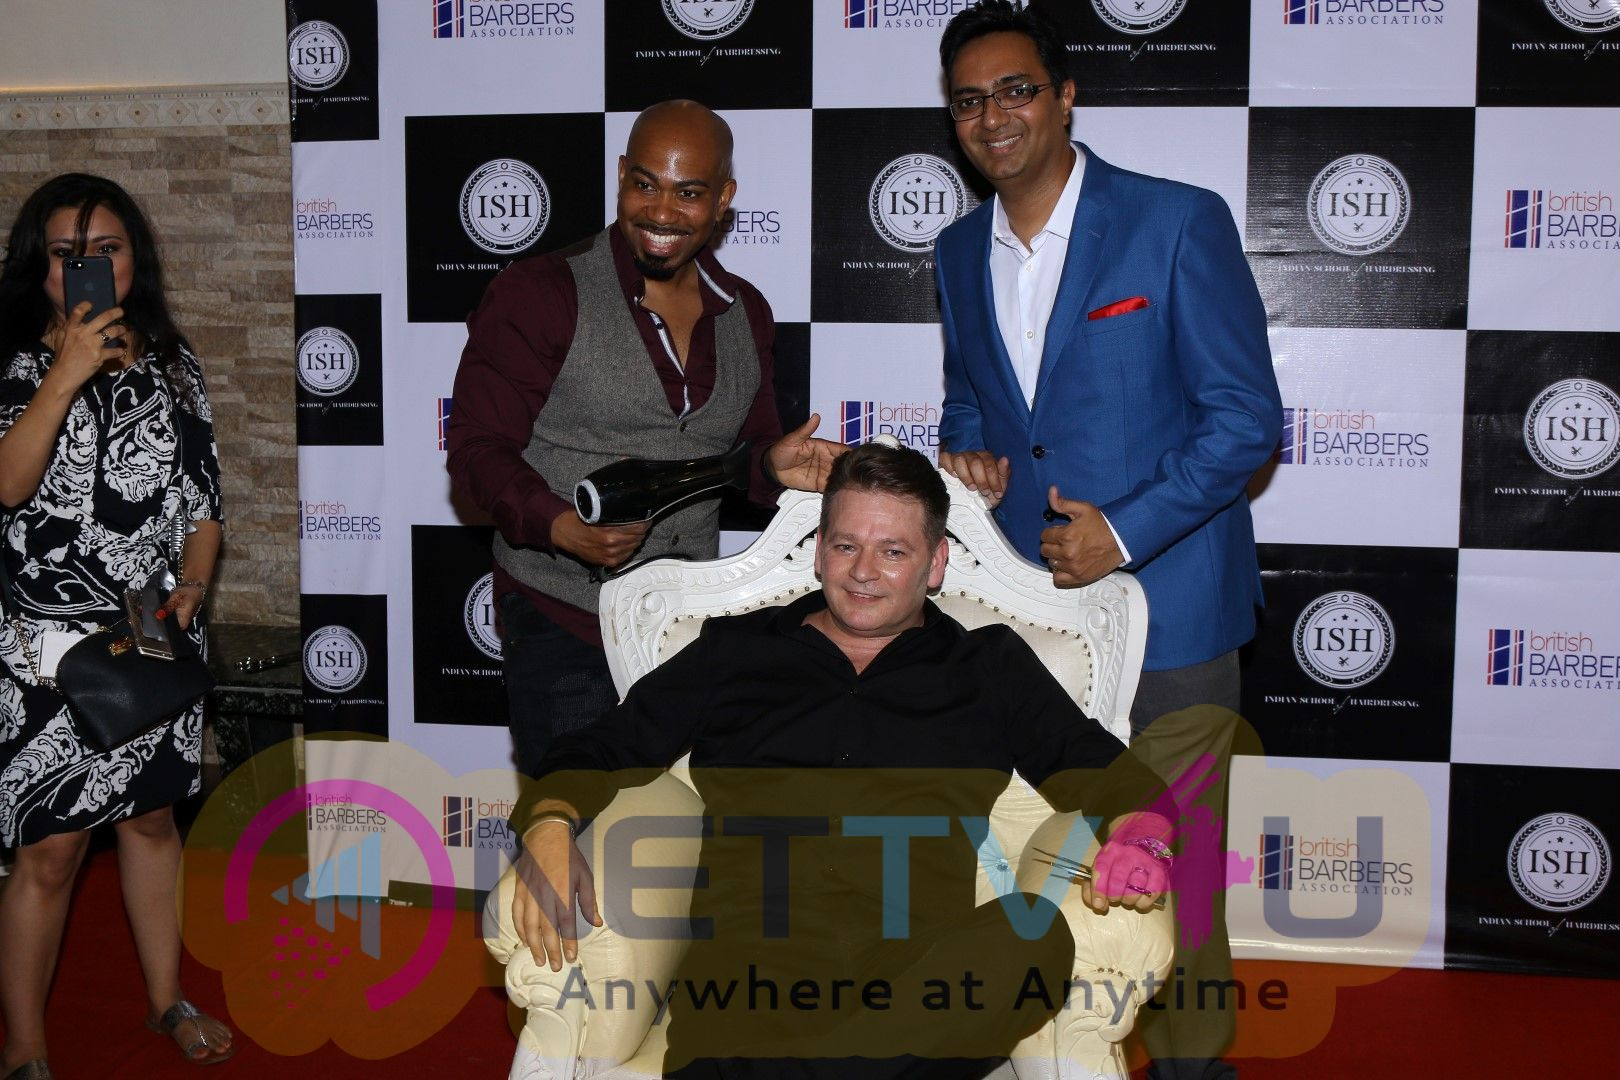 Indias First Hair Styling Event Dedicated To Mens Grooming